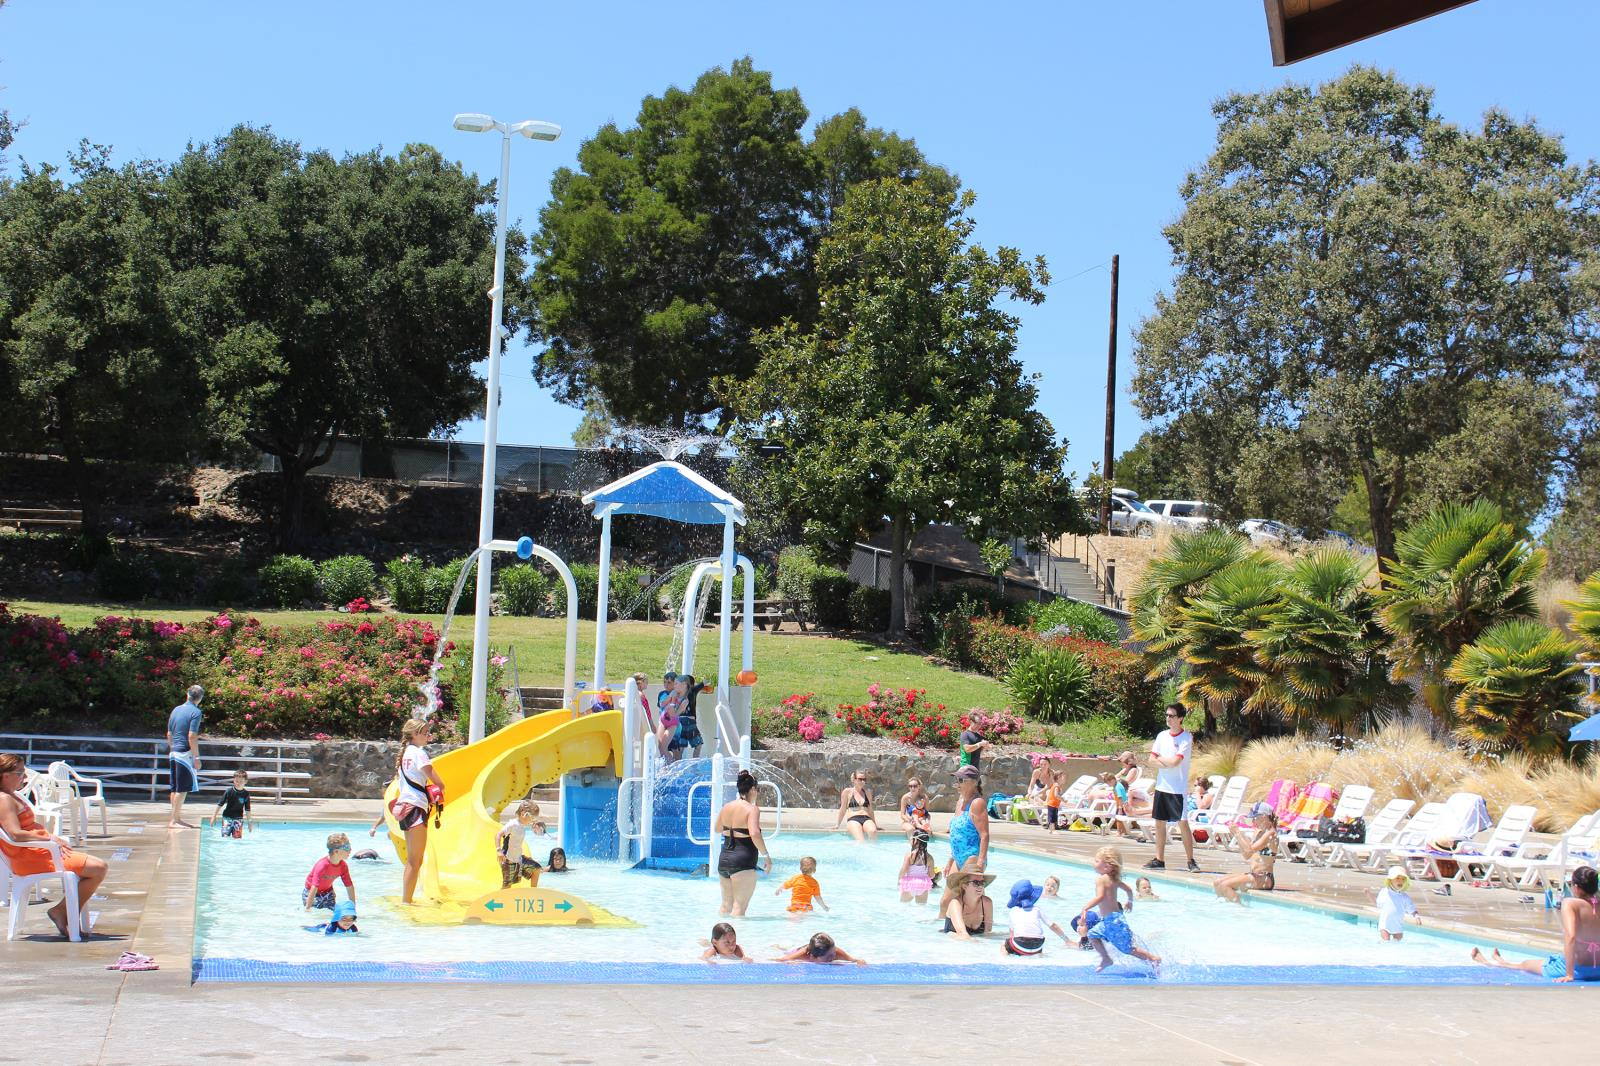 Activity pool hamilton community pool marin mommies - Hamilton swimming pool san francisco ...